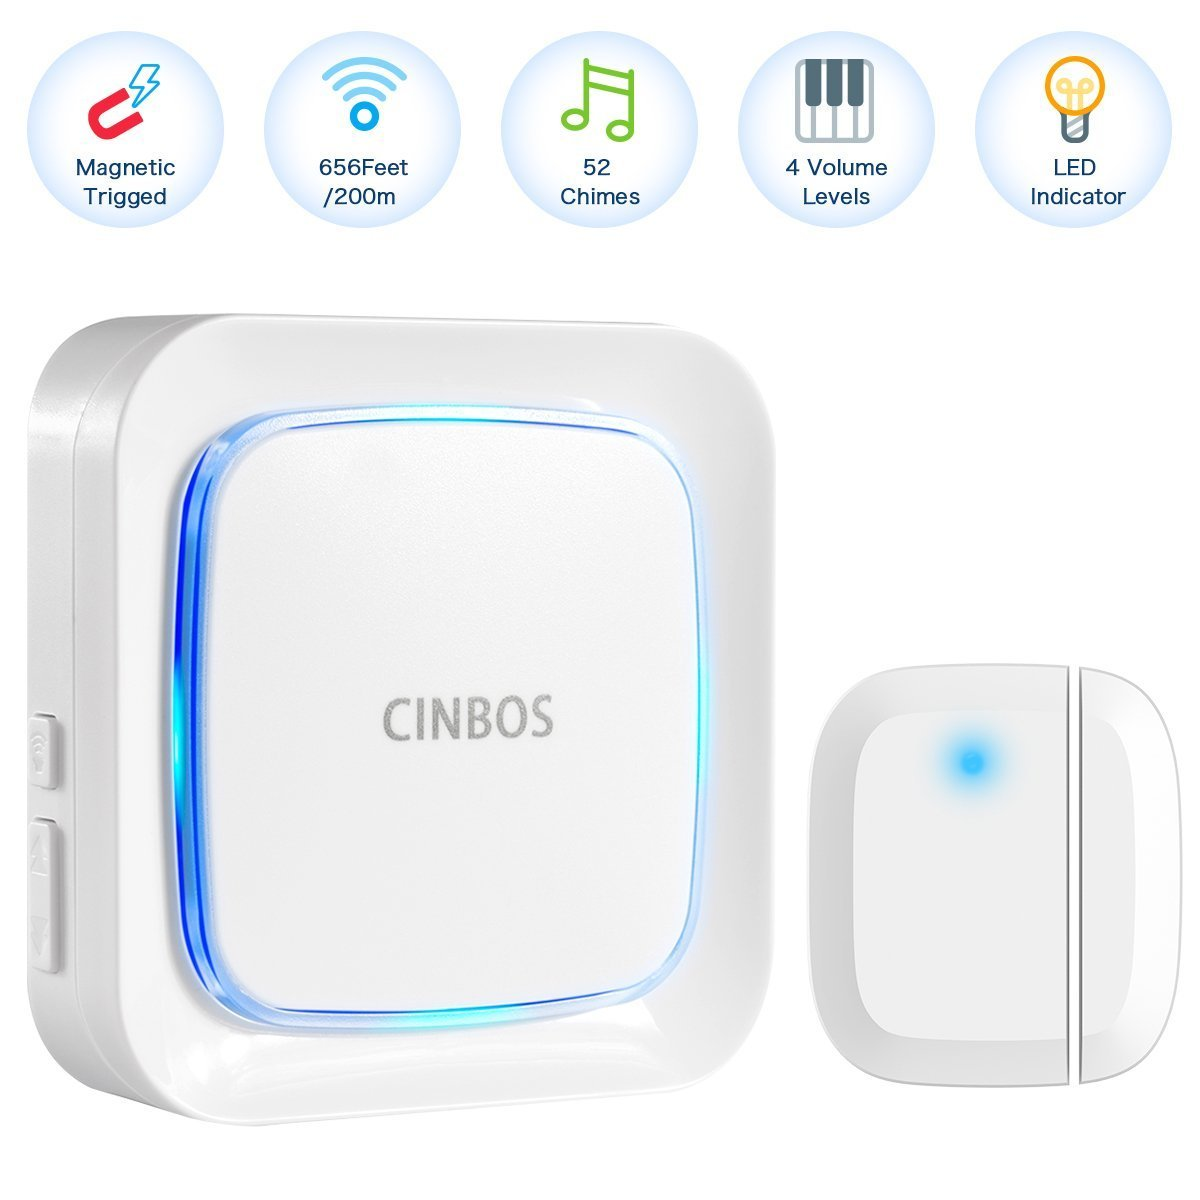 Door Alarm for Home/Office, Cinbos Wireless Door Open Chime, Range 656 Feet/52 Chimes/4 Level Volume/LED Flash Expandable Home Security Magnetically Triggered Window Entry Alert Doorbell